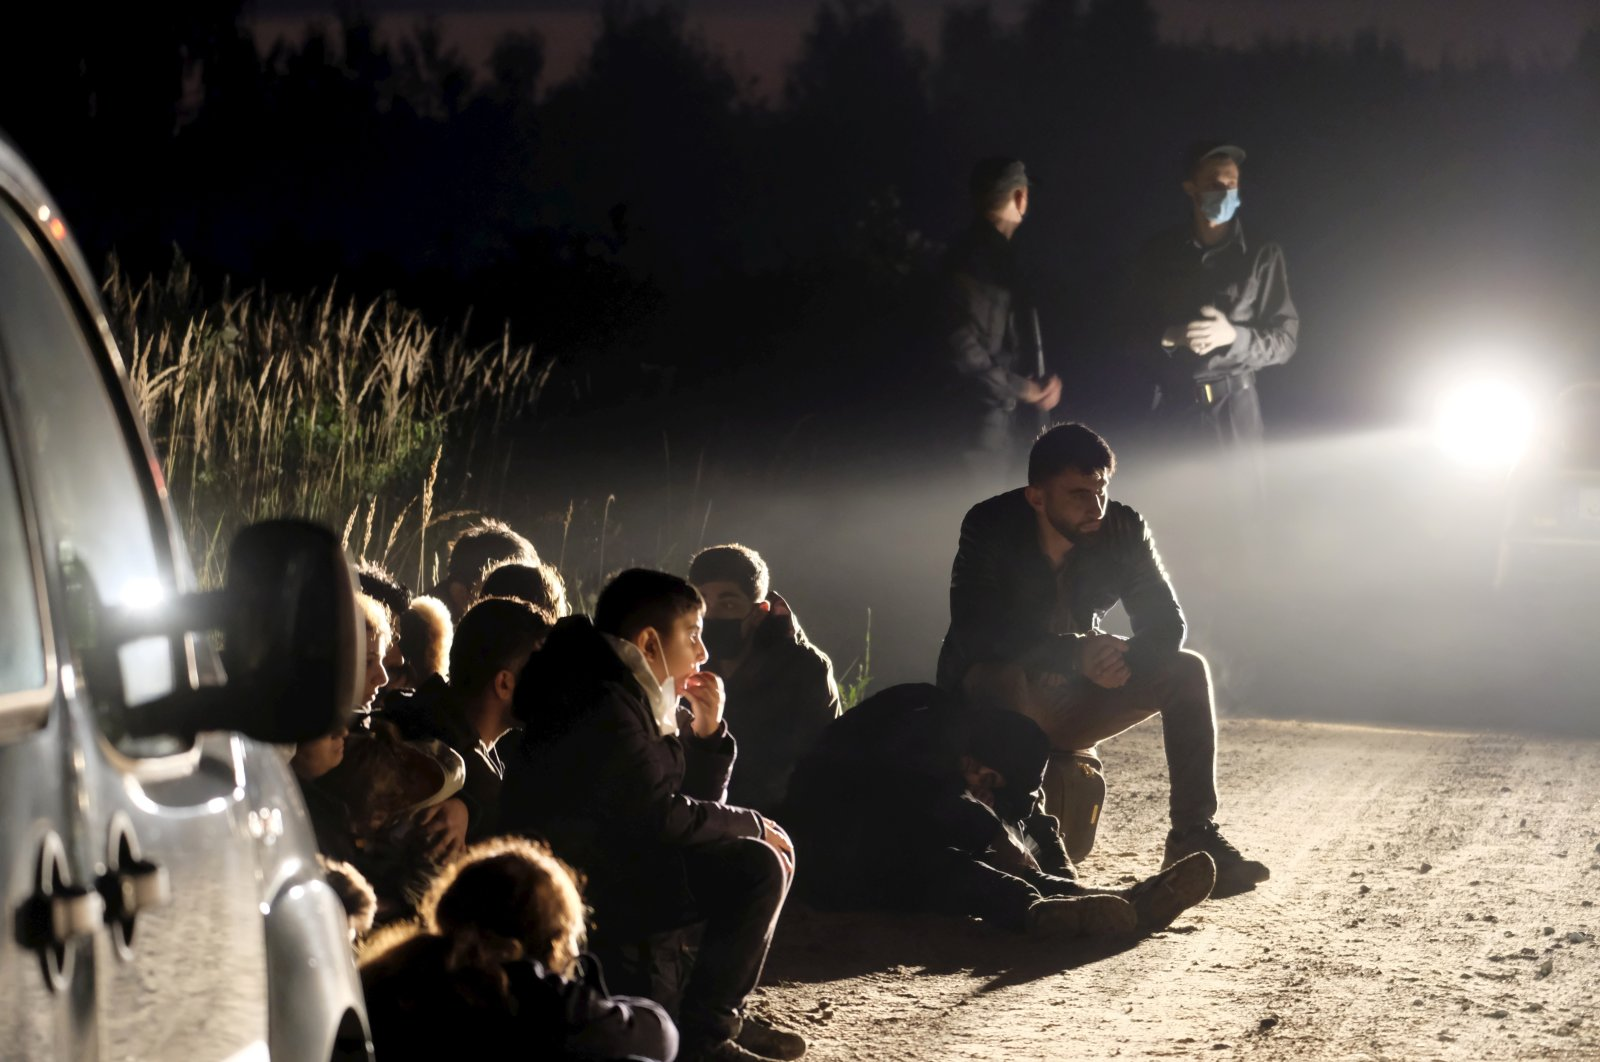 A group of illegal migrants detained in Vorzova, Latvia, Aug. 11, 2021. (EPA Photo)